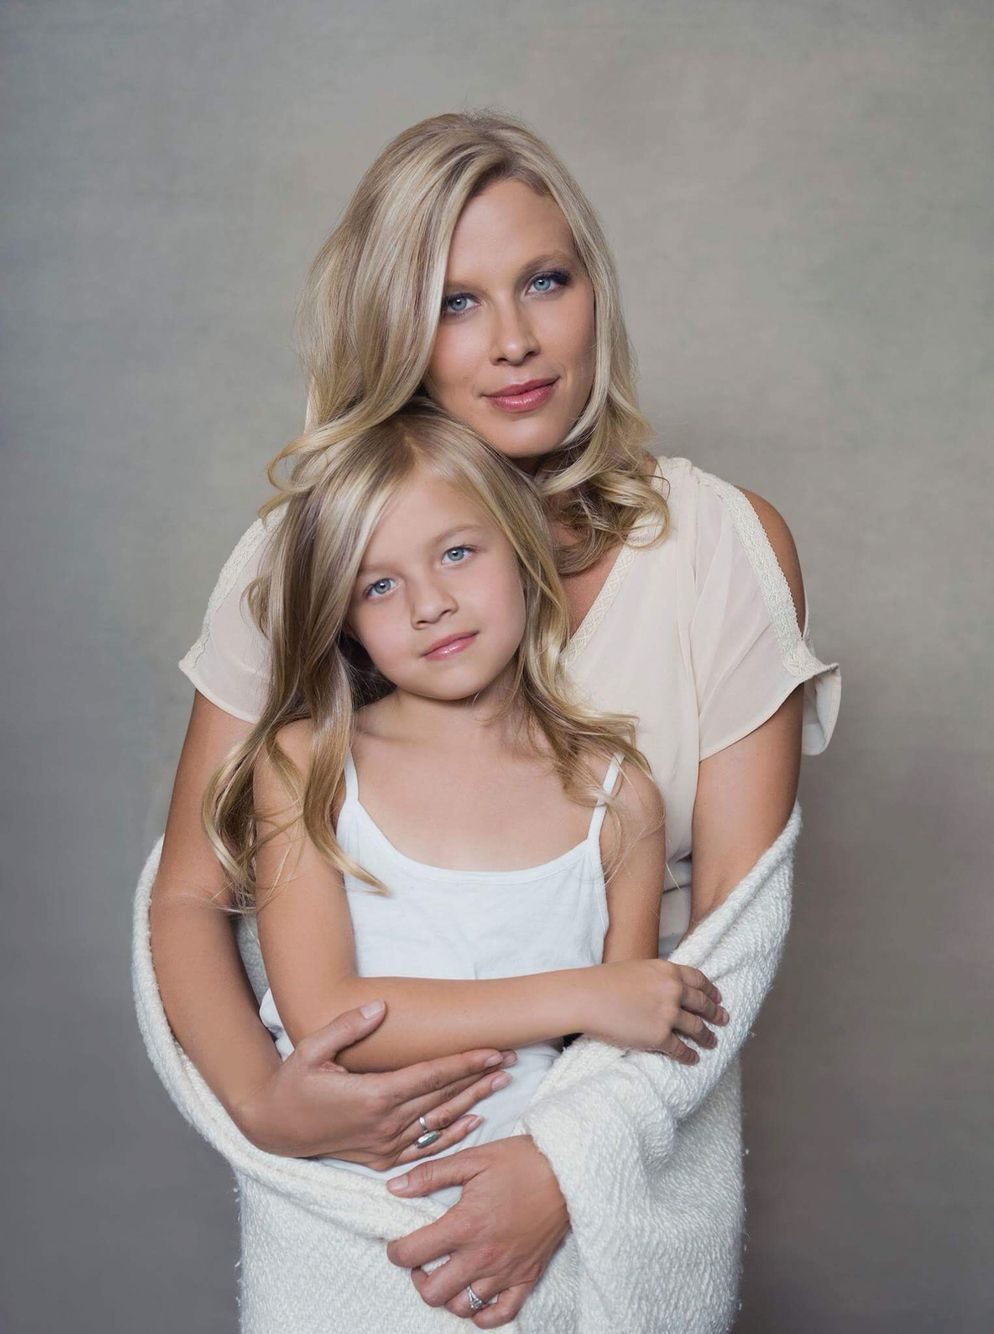 Sue Bryce Mother And Young Daughter Glamour Portraiture - Mother captures childhood joy photographs daughter